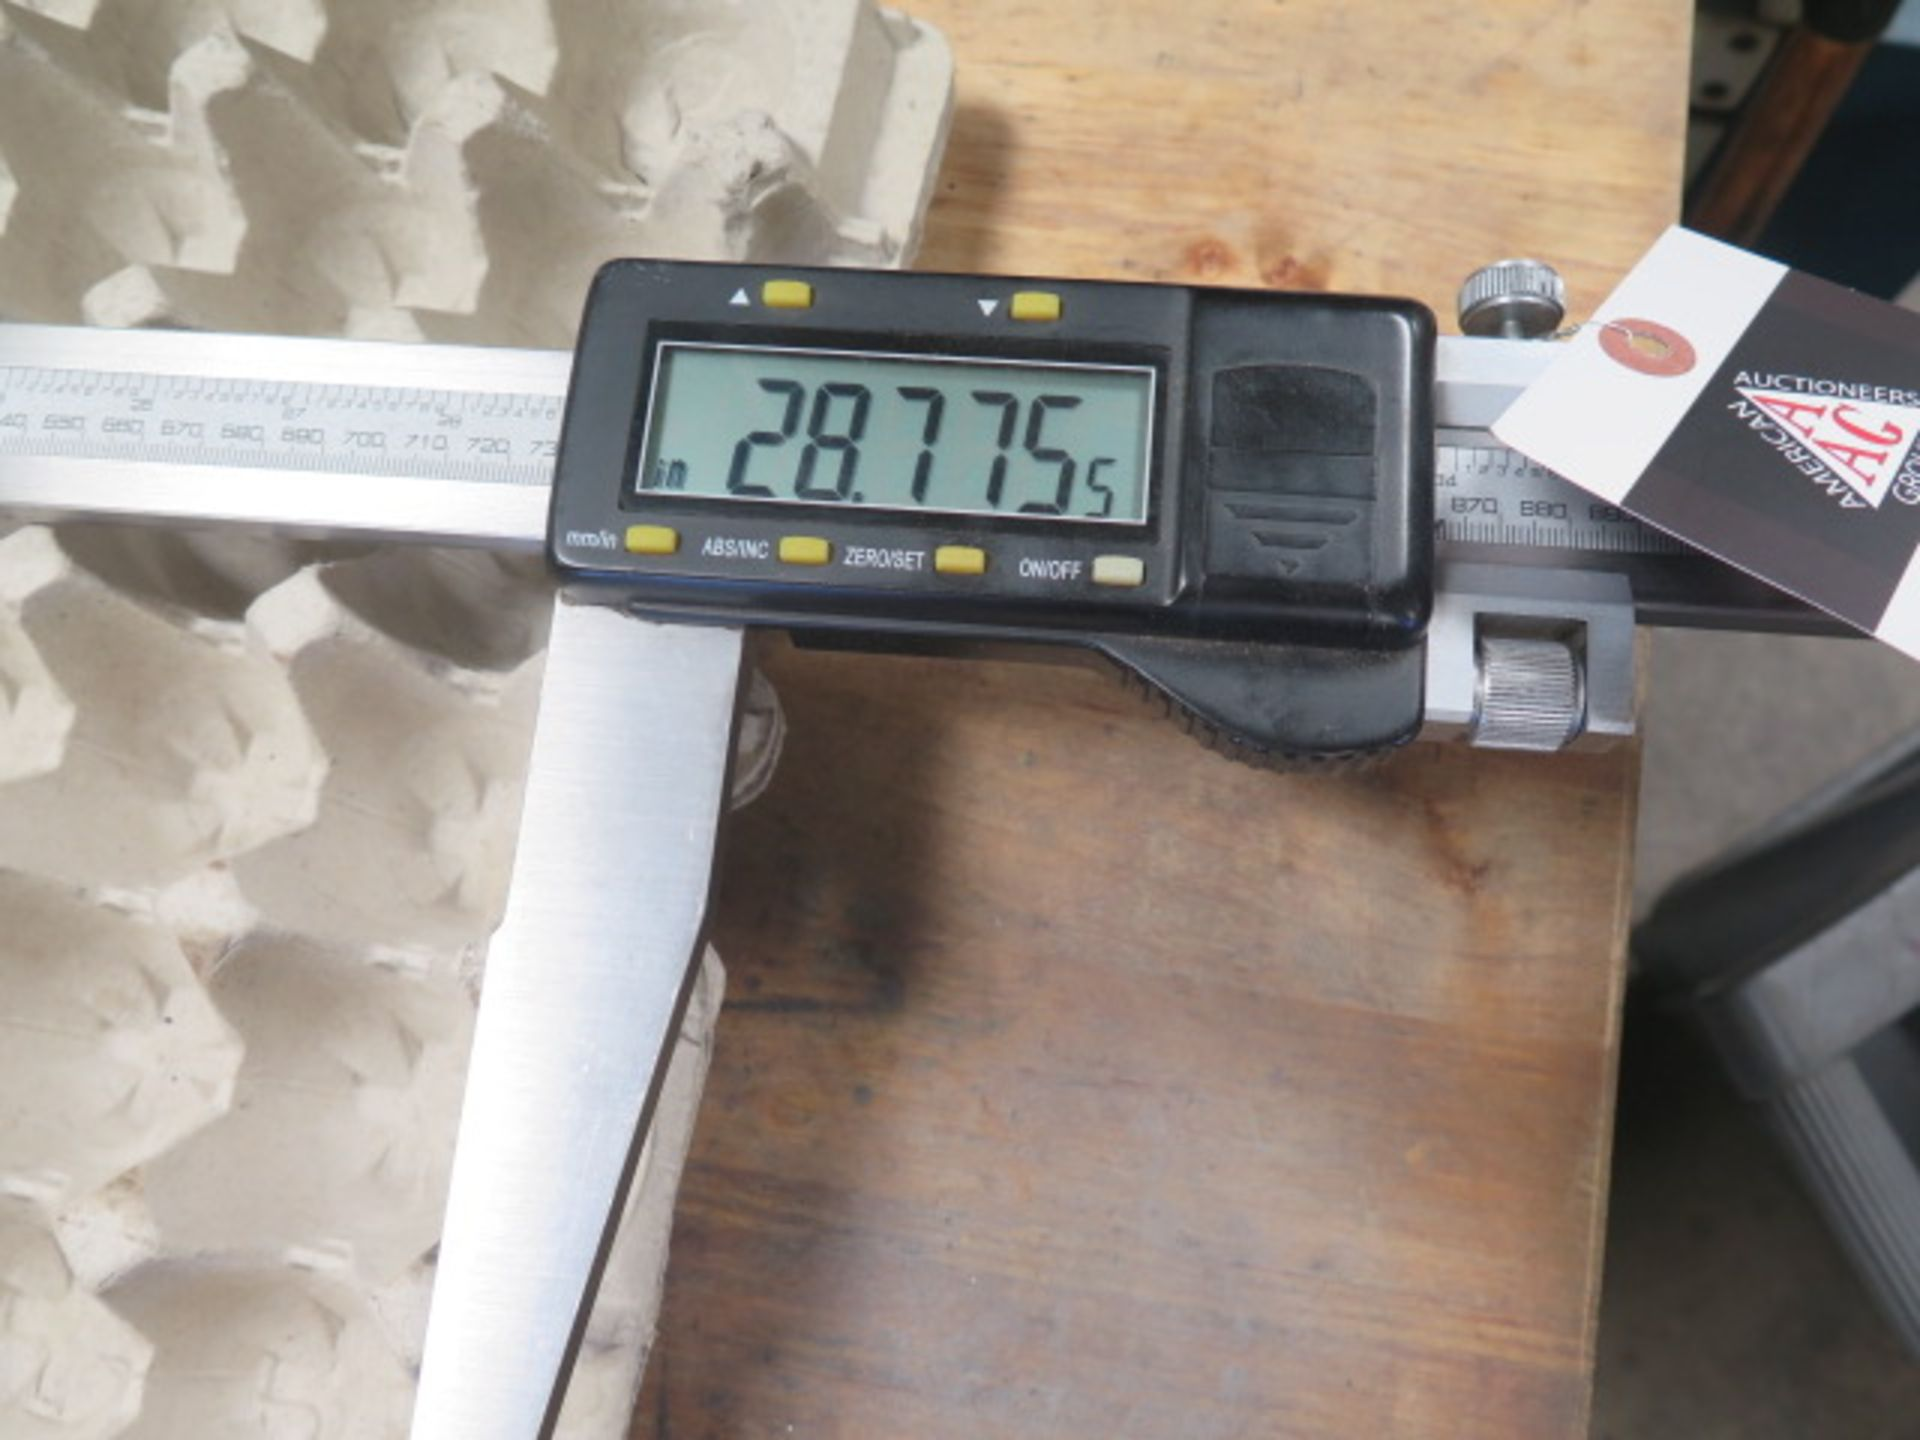 """Import 40"""" Digital Caliper (SOLD AS-IS - NO WARRANTY) - Image 2 of 3"""